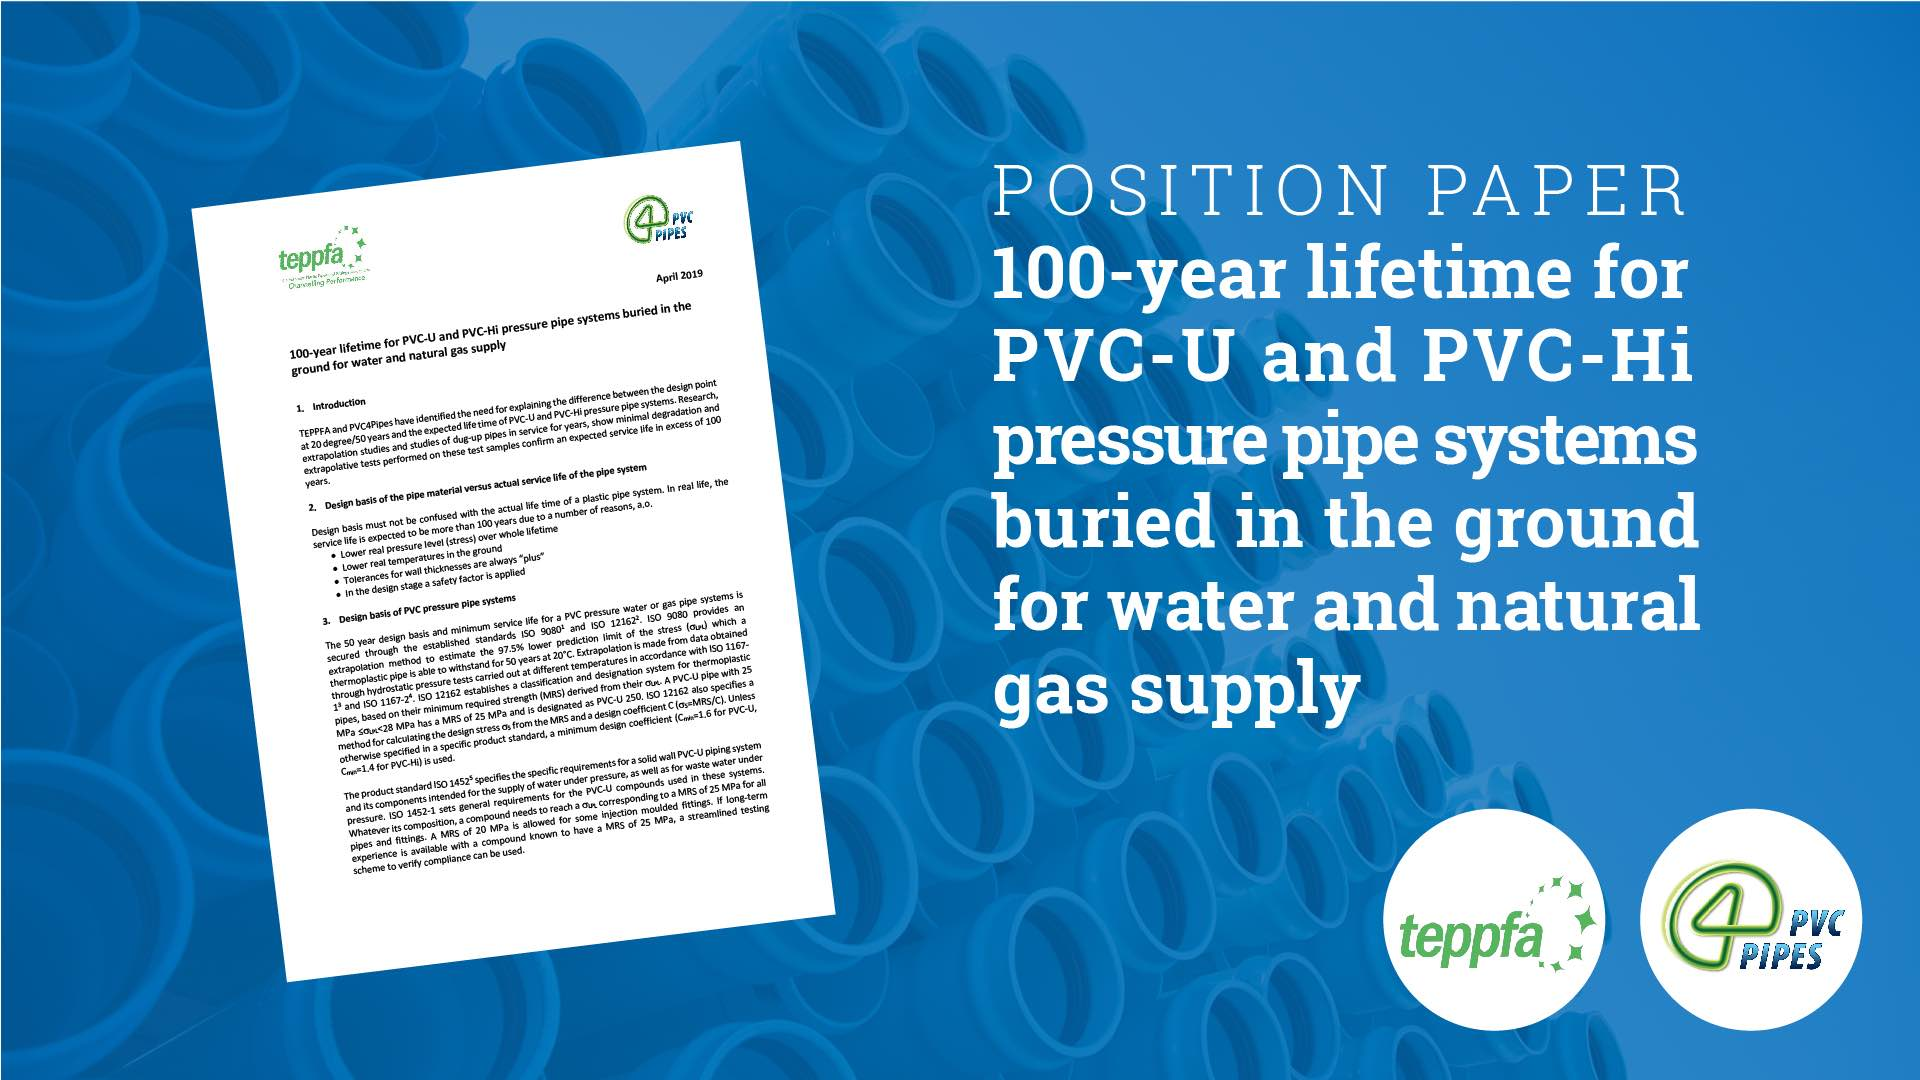 pvc pipes 100 years position paper